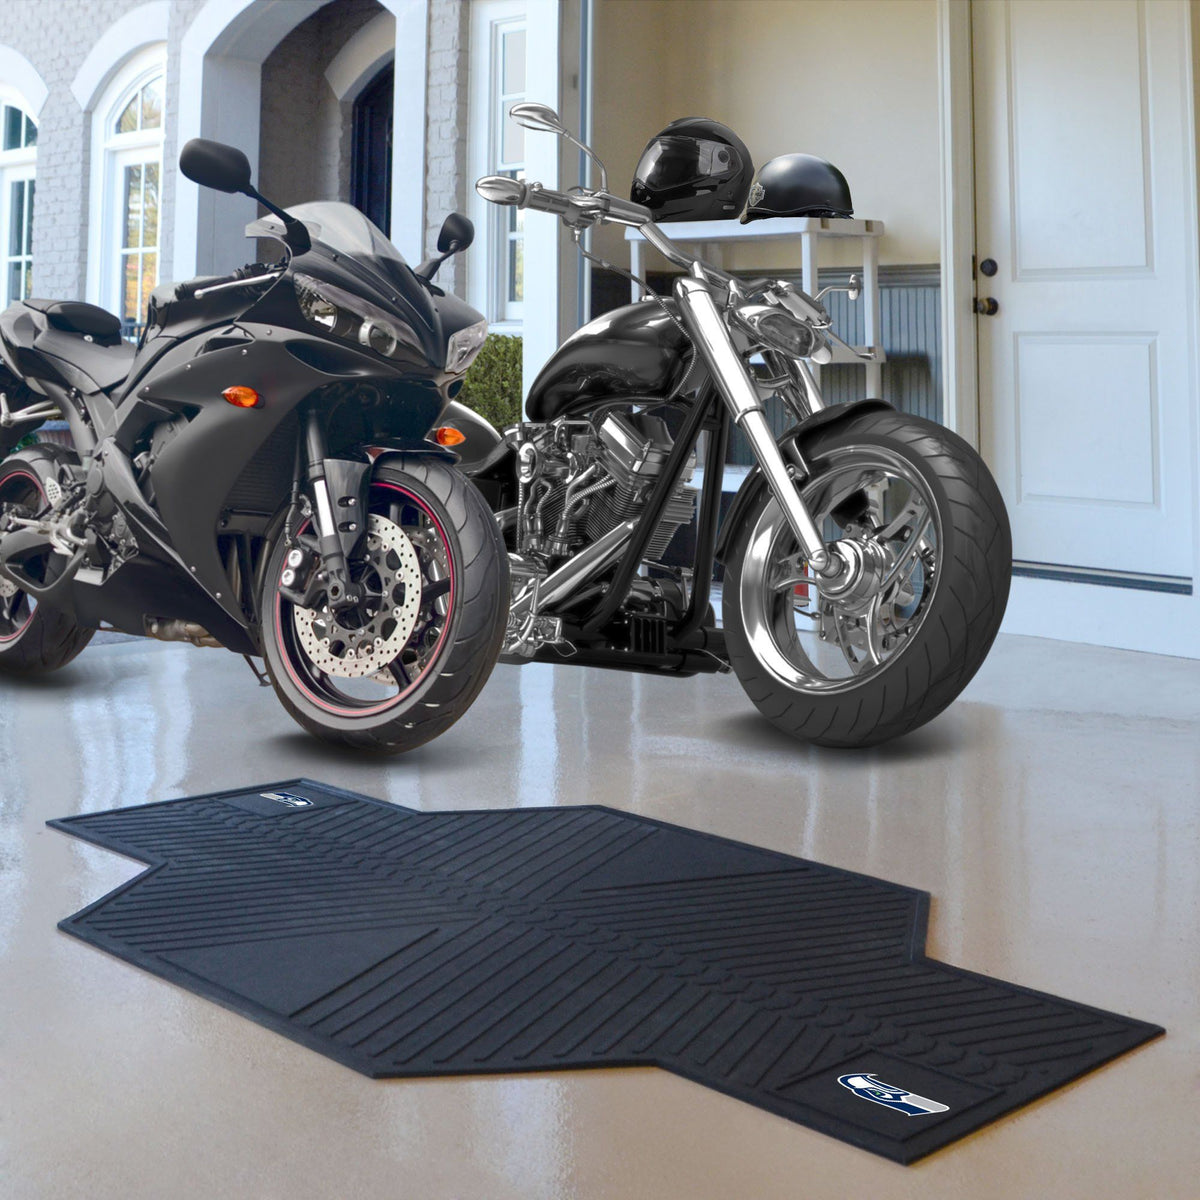 "NFL - Motorcycle Mat, 82.5"" x 42"" NFL Mats, Motorcycle Accessory, Motorcycle Mat, NFL, Auto Fan Mats Seattle Seahawks"